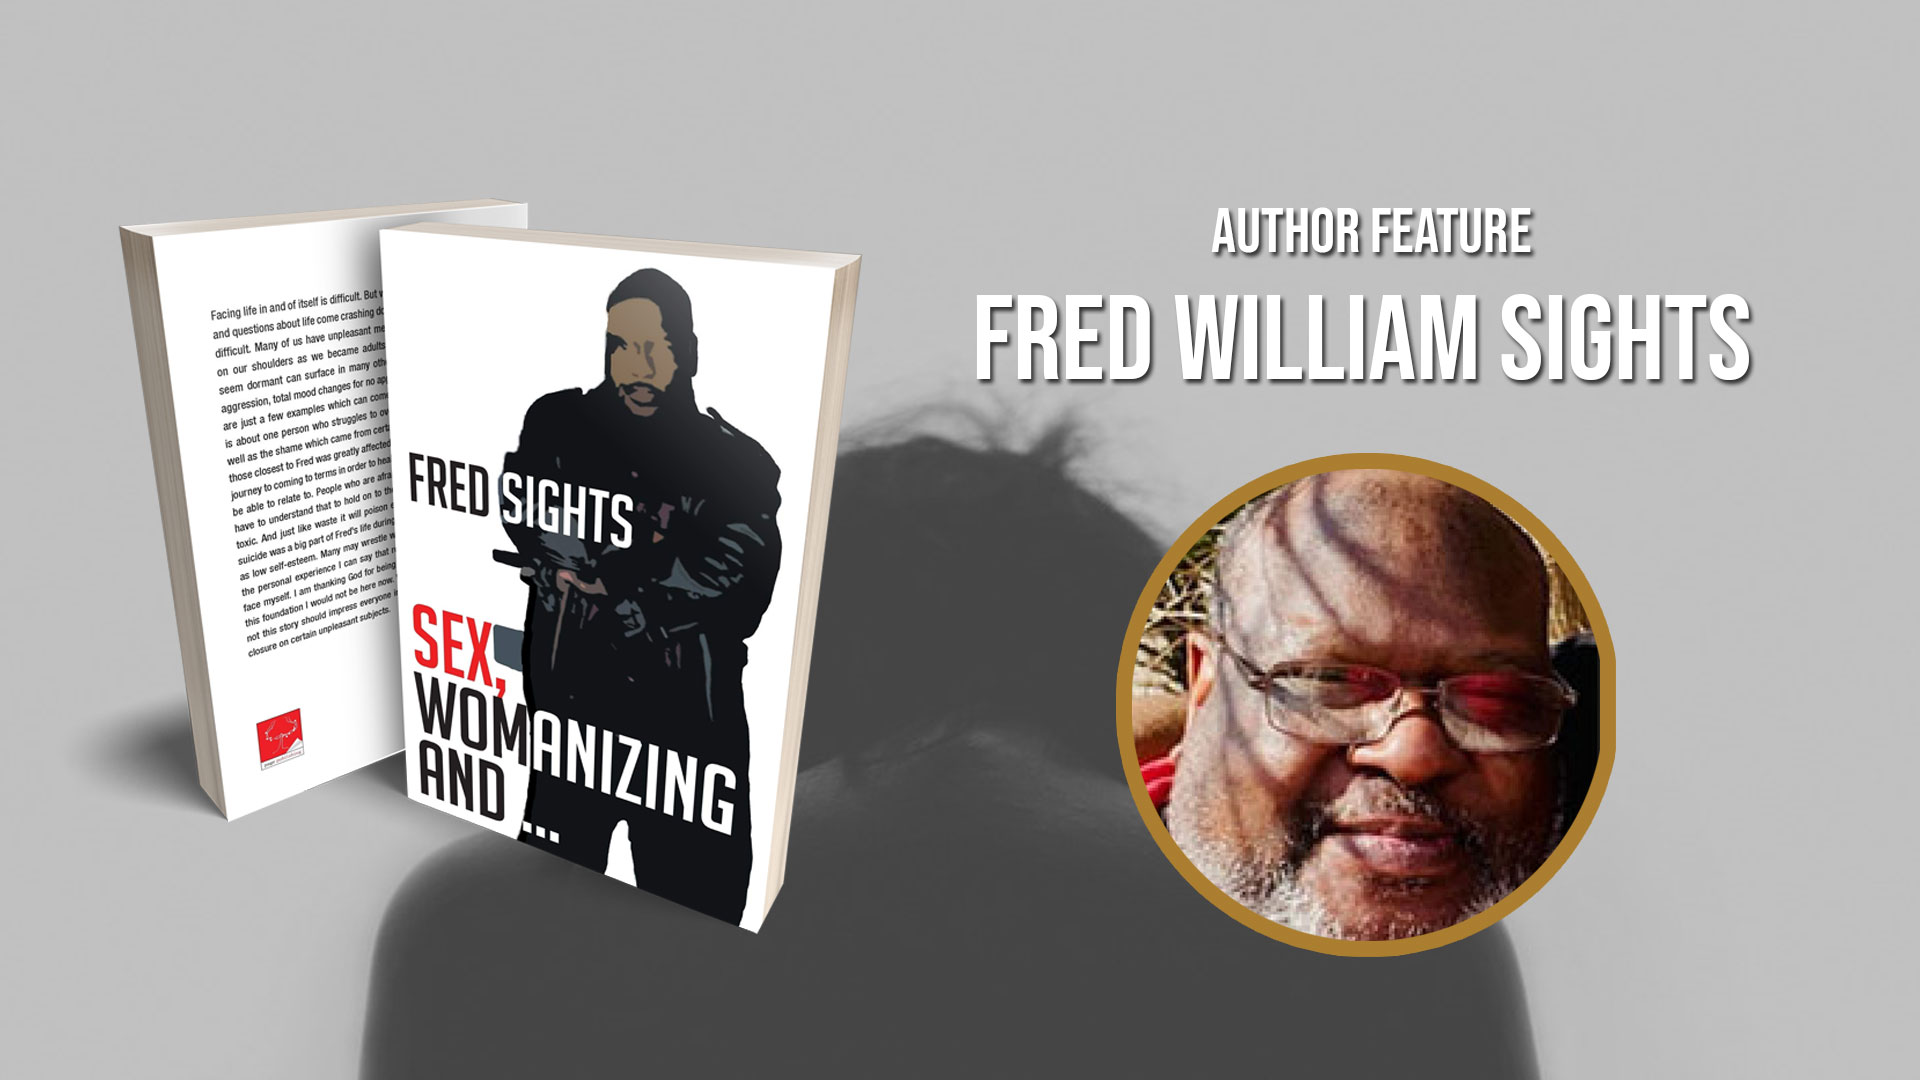 aauthor-feature-Fred-William-Sights banner